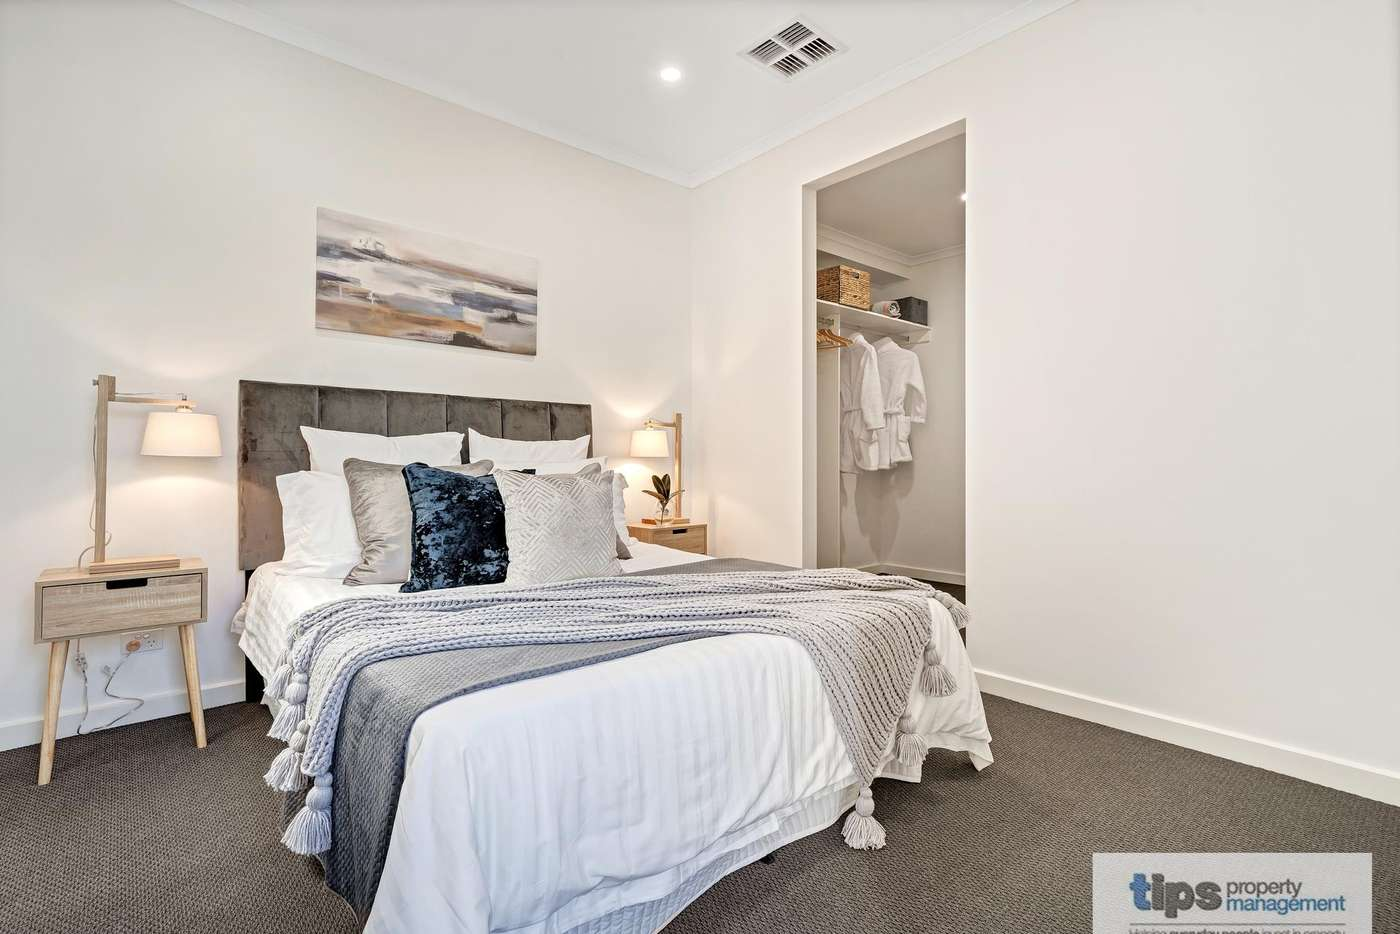 Fifth view of Homely villa listing, 3 Norma Street, Mile End SA 5031